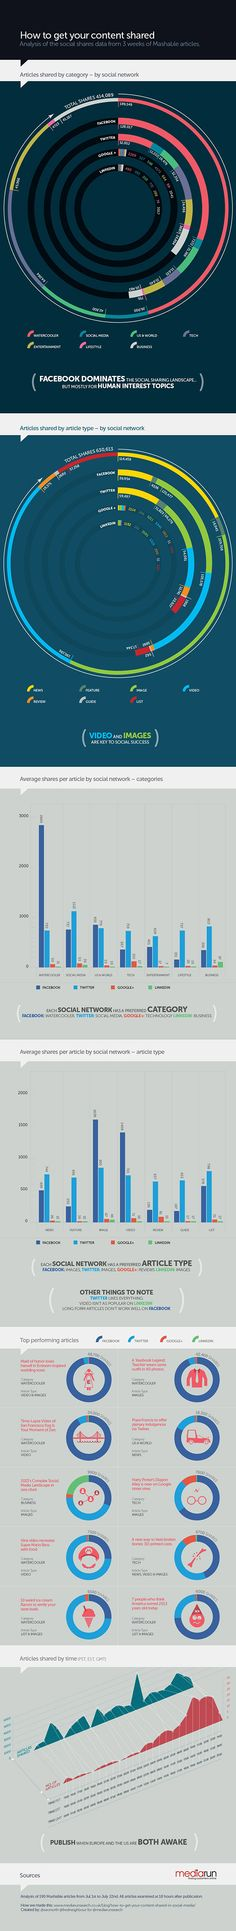 #Infographic How To Get Content Shared Large #socialmedia